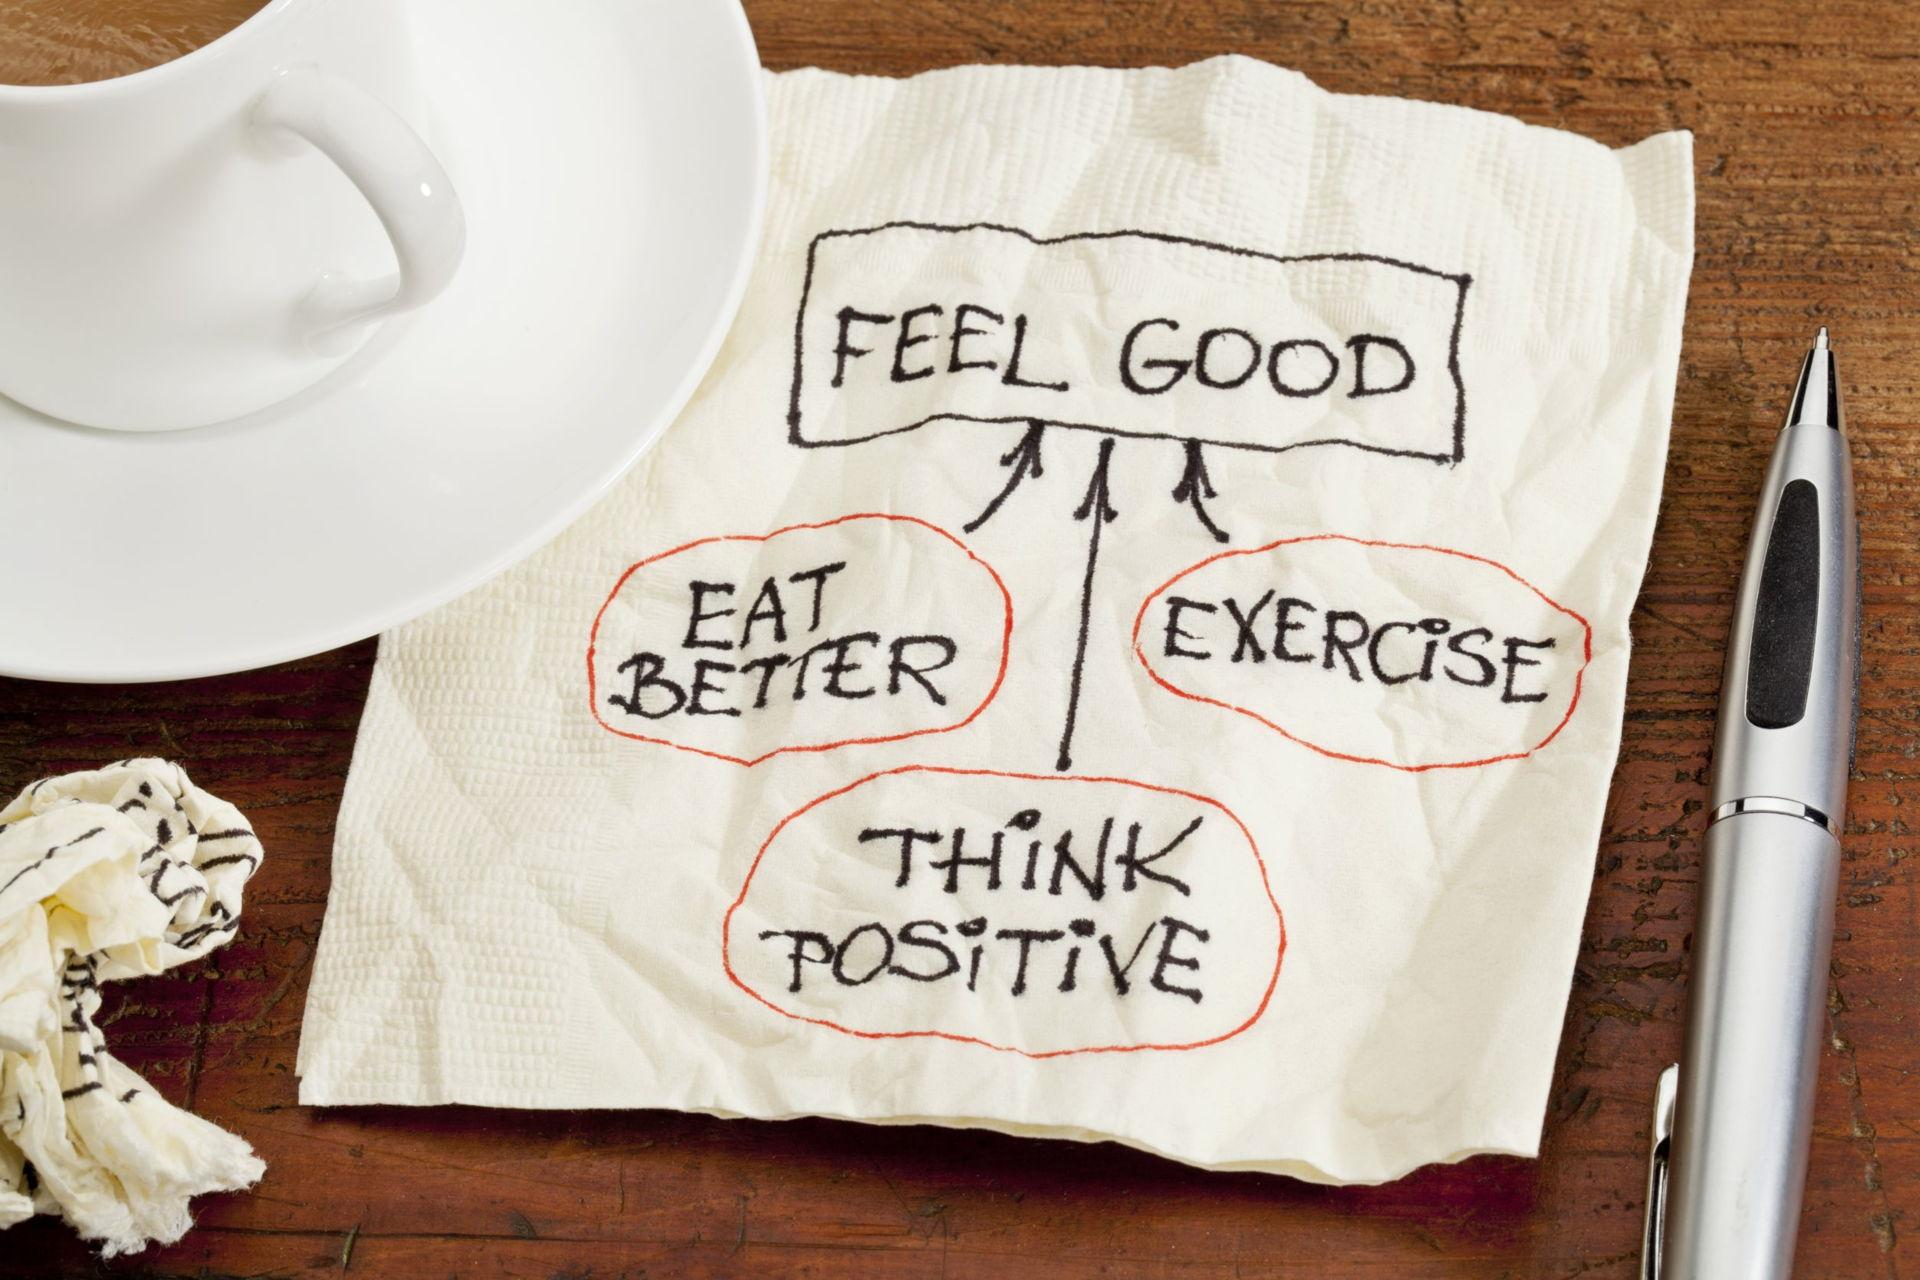 Feel Good Eat Better Exercise Think Positive - Image